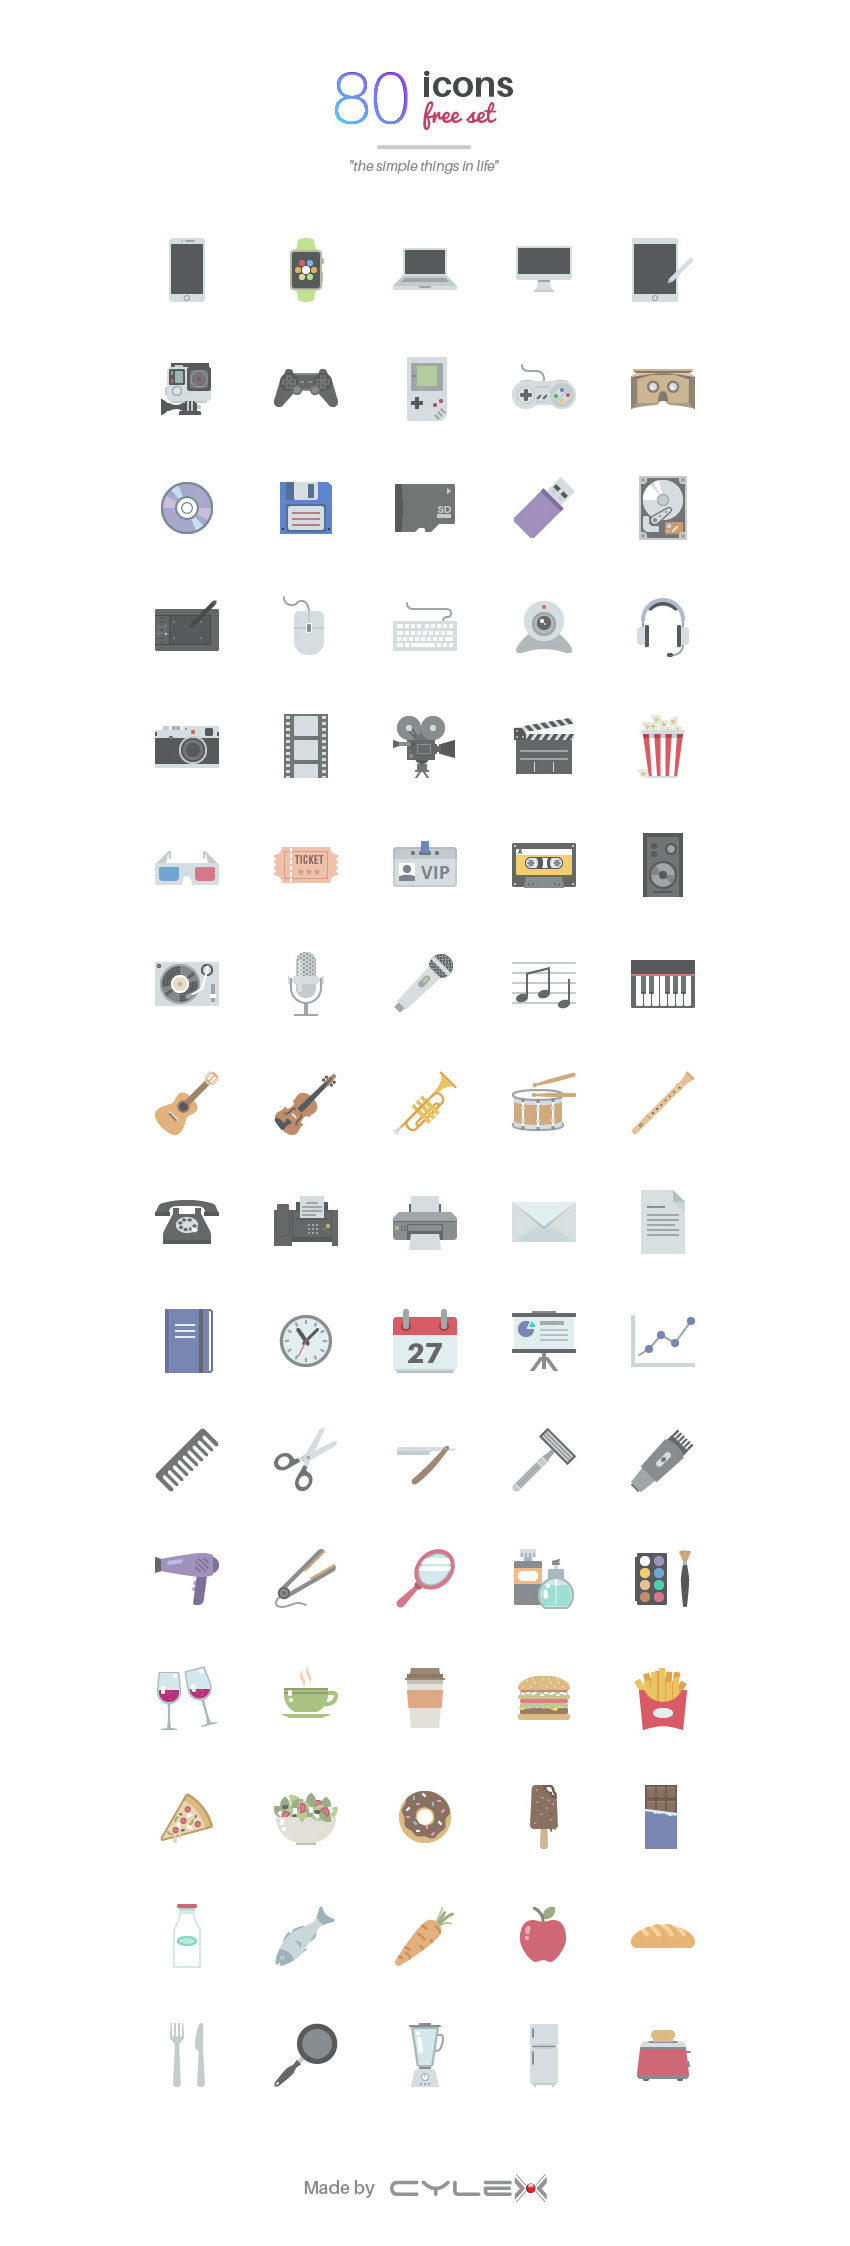 Things in Life: 80 Free Icons set for PSD, AI, PNG